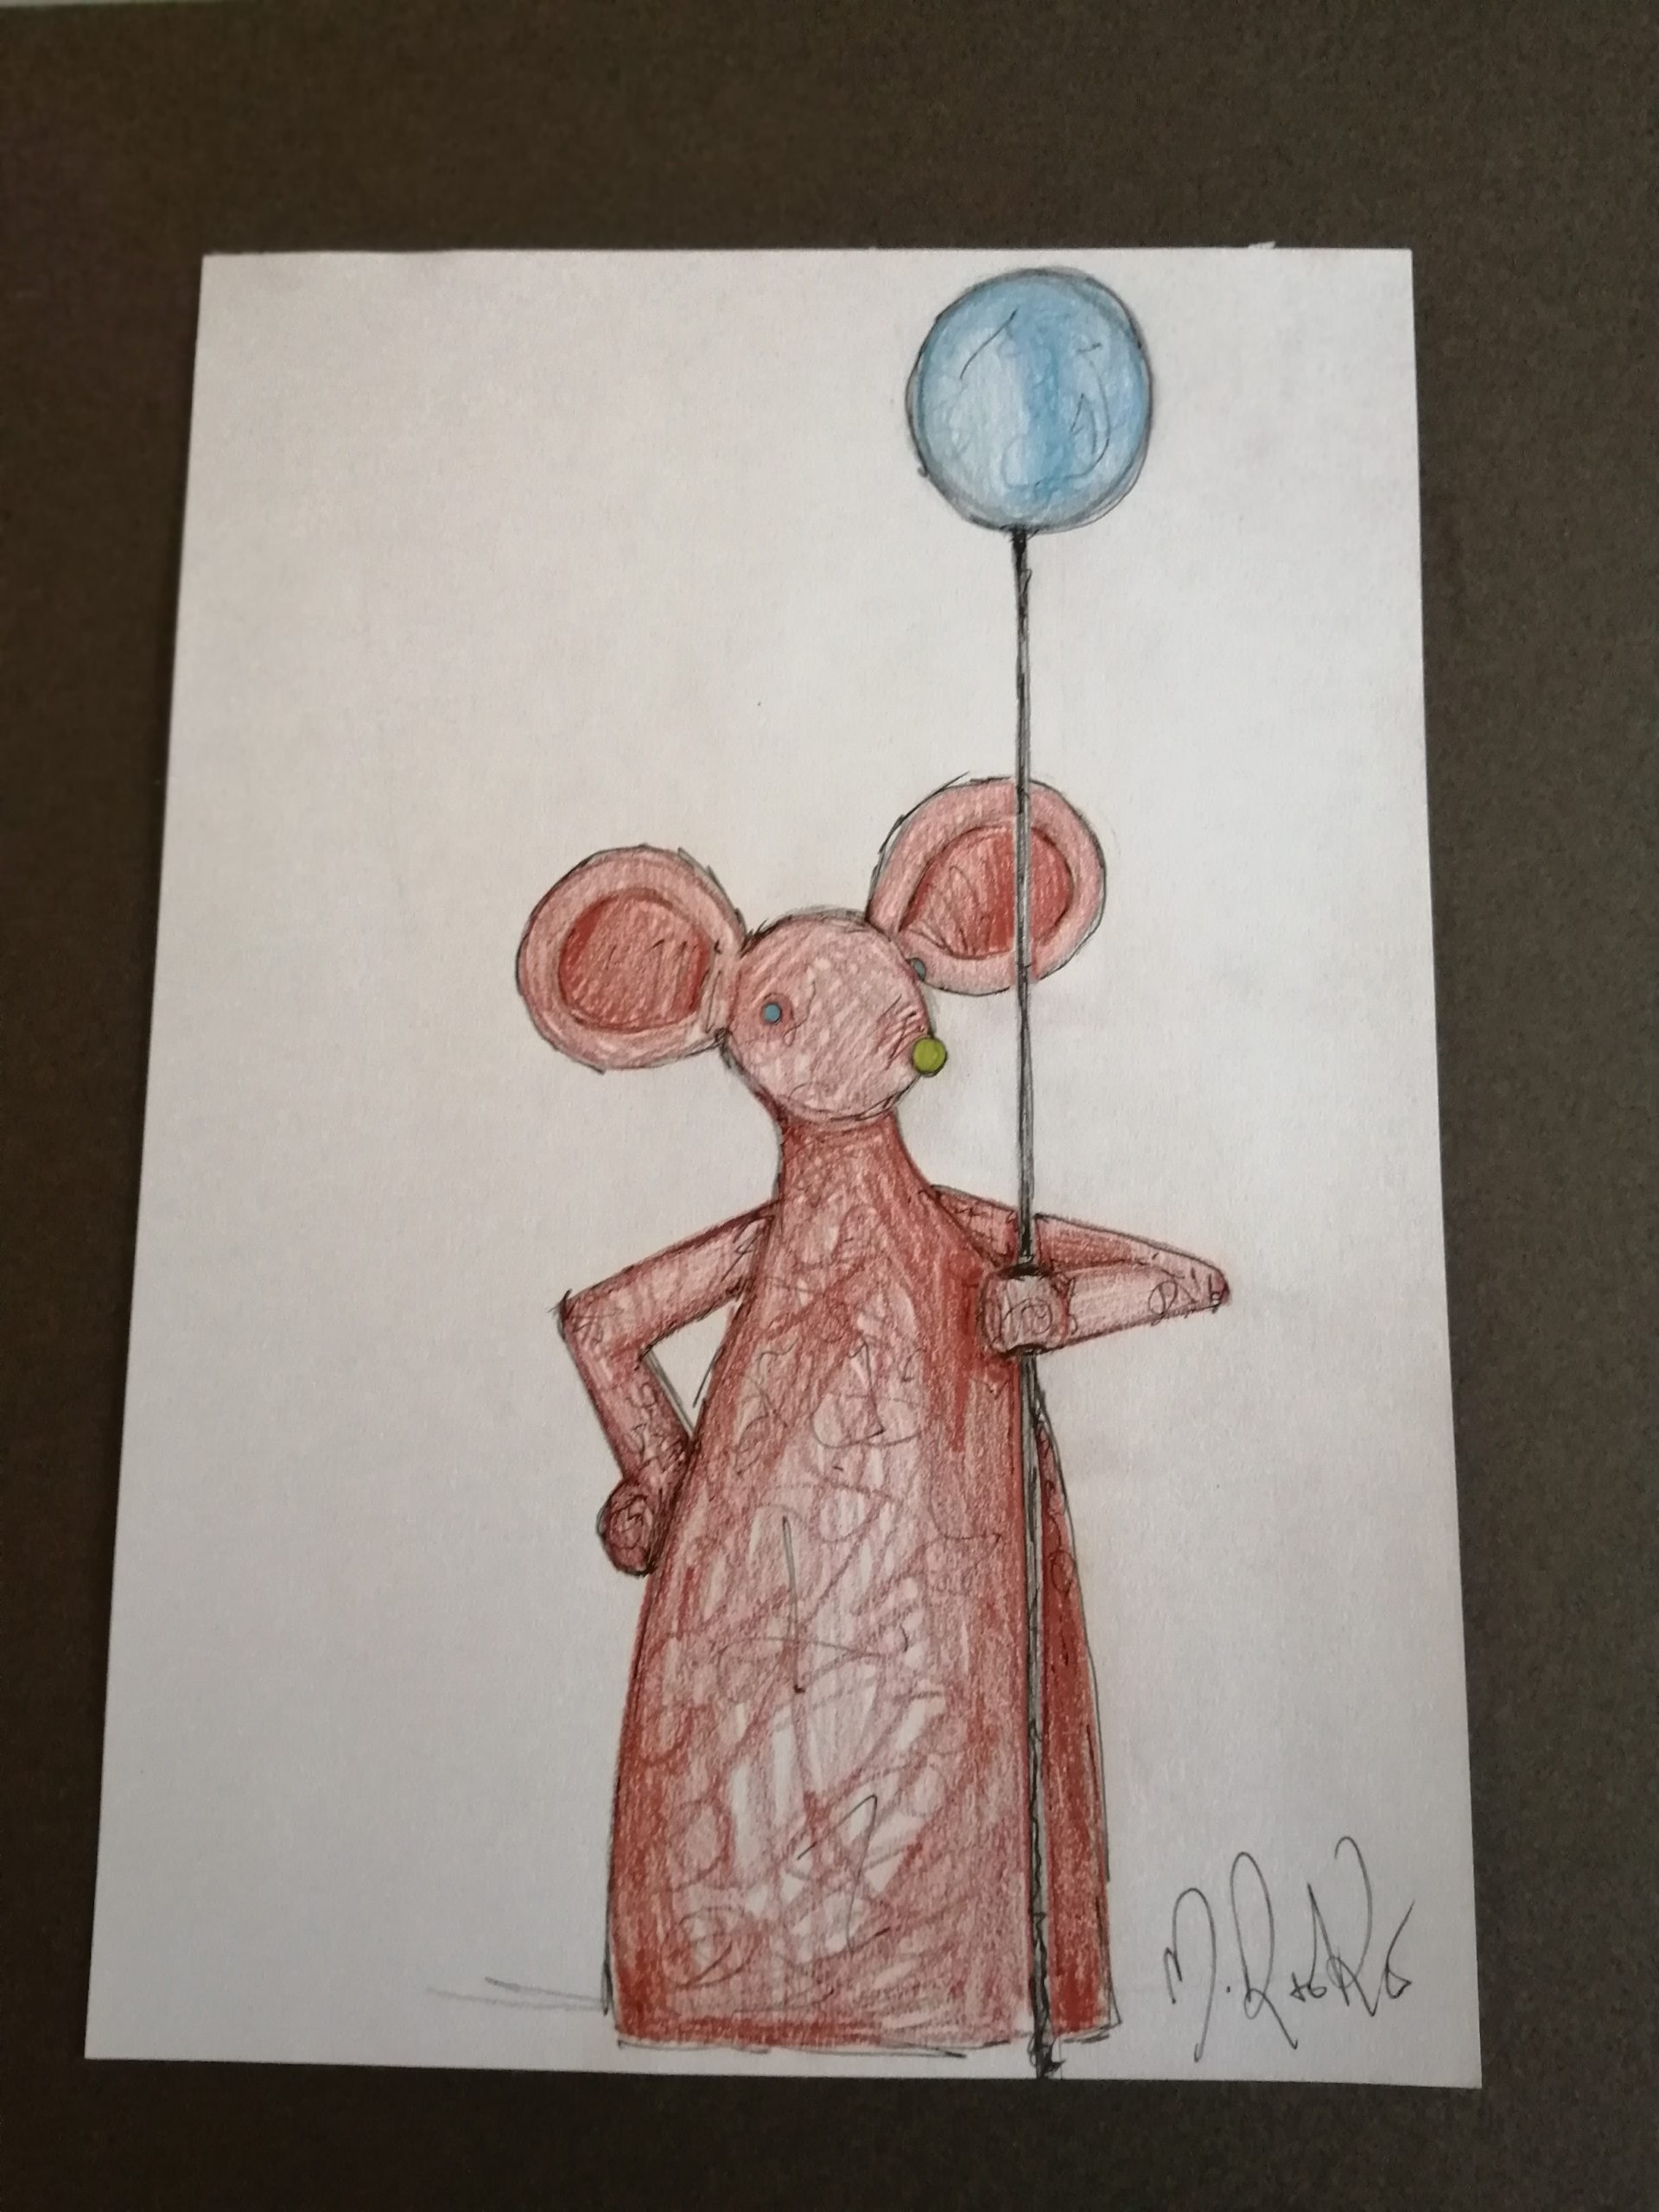 Sketch 'Brown Mouse With Blue Balloon